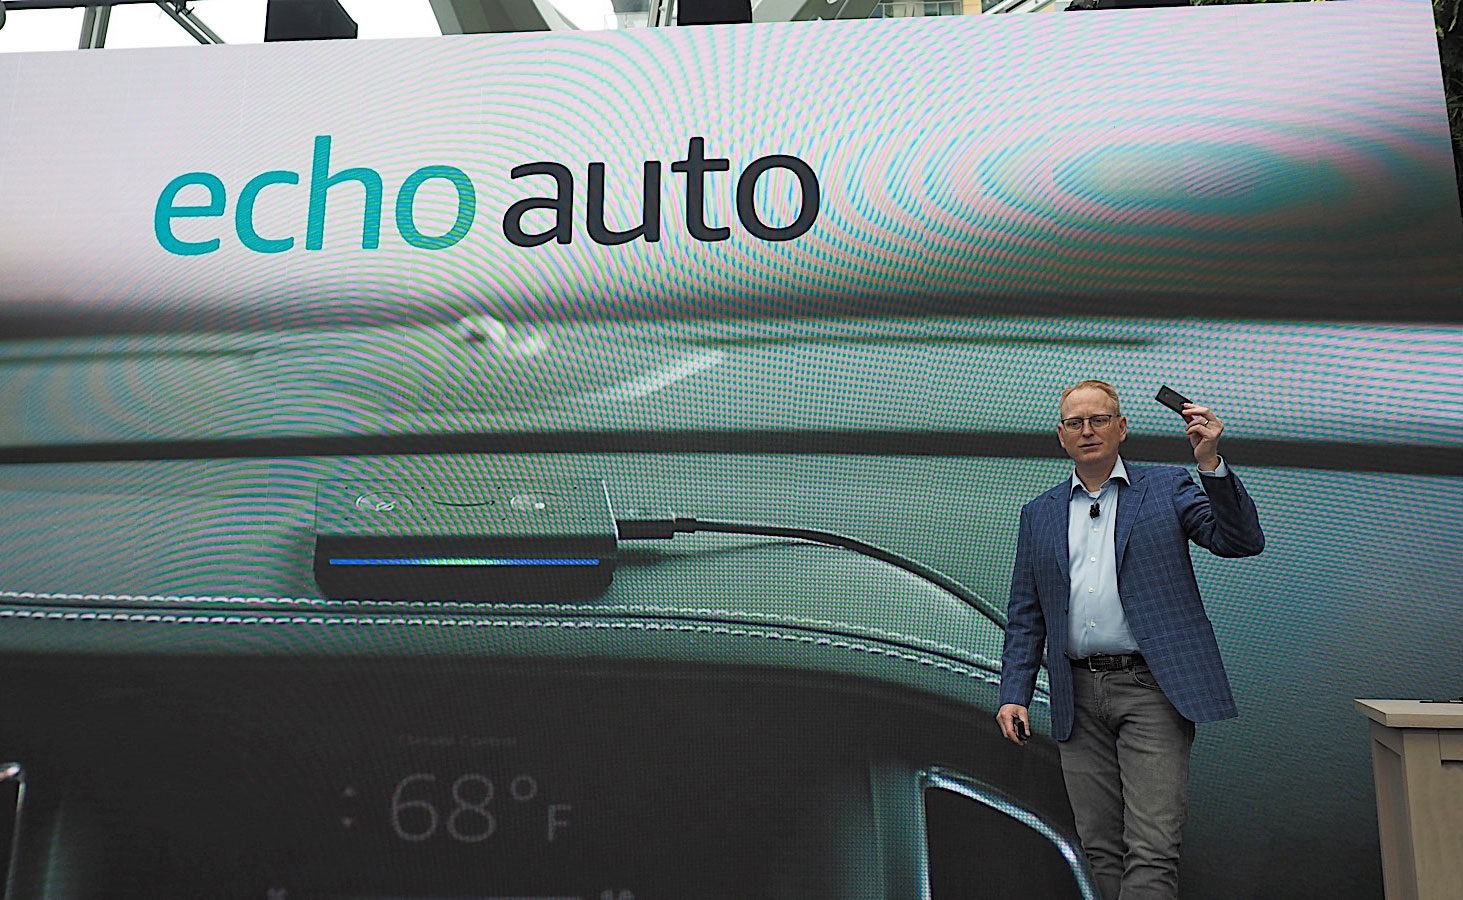 Amazon's Echo Auto puts Alexa in any car | DeviceDaily com